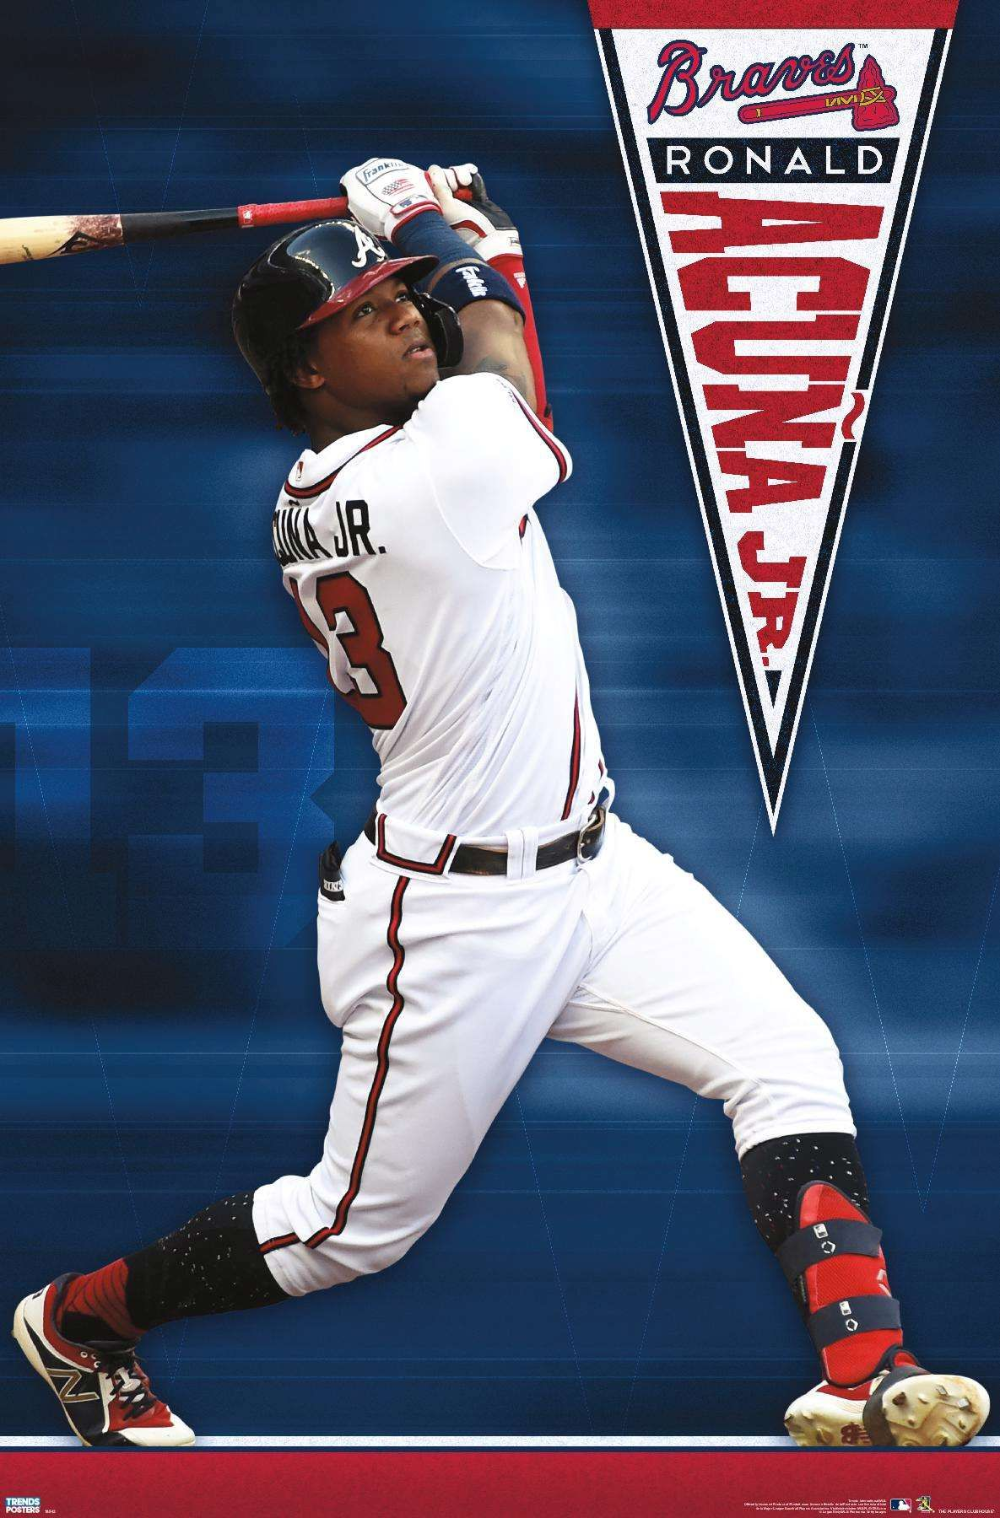 Mlb Atlanta Braves Ronald Acuna Jr In 2020 Braves Atlanta Braves Wallpaper Atlanta Braves